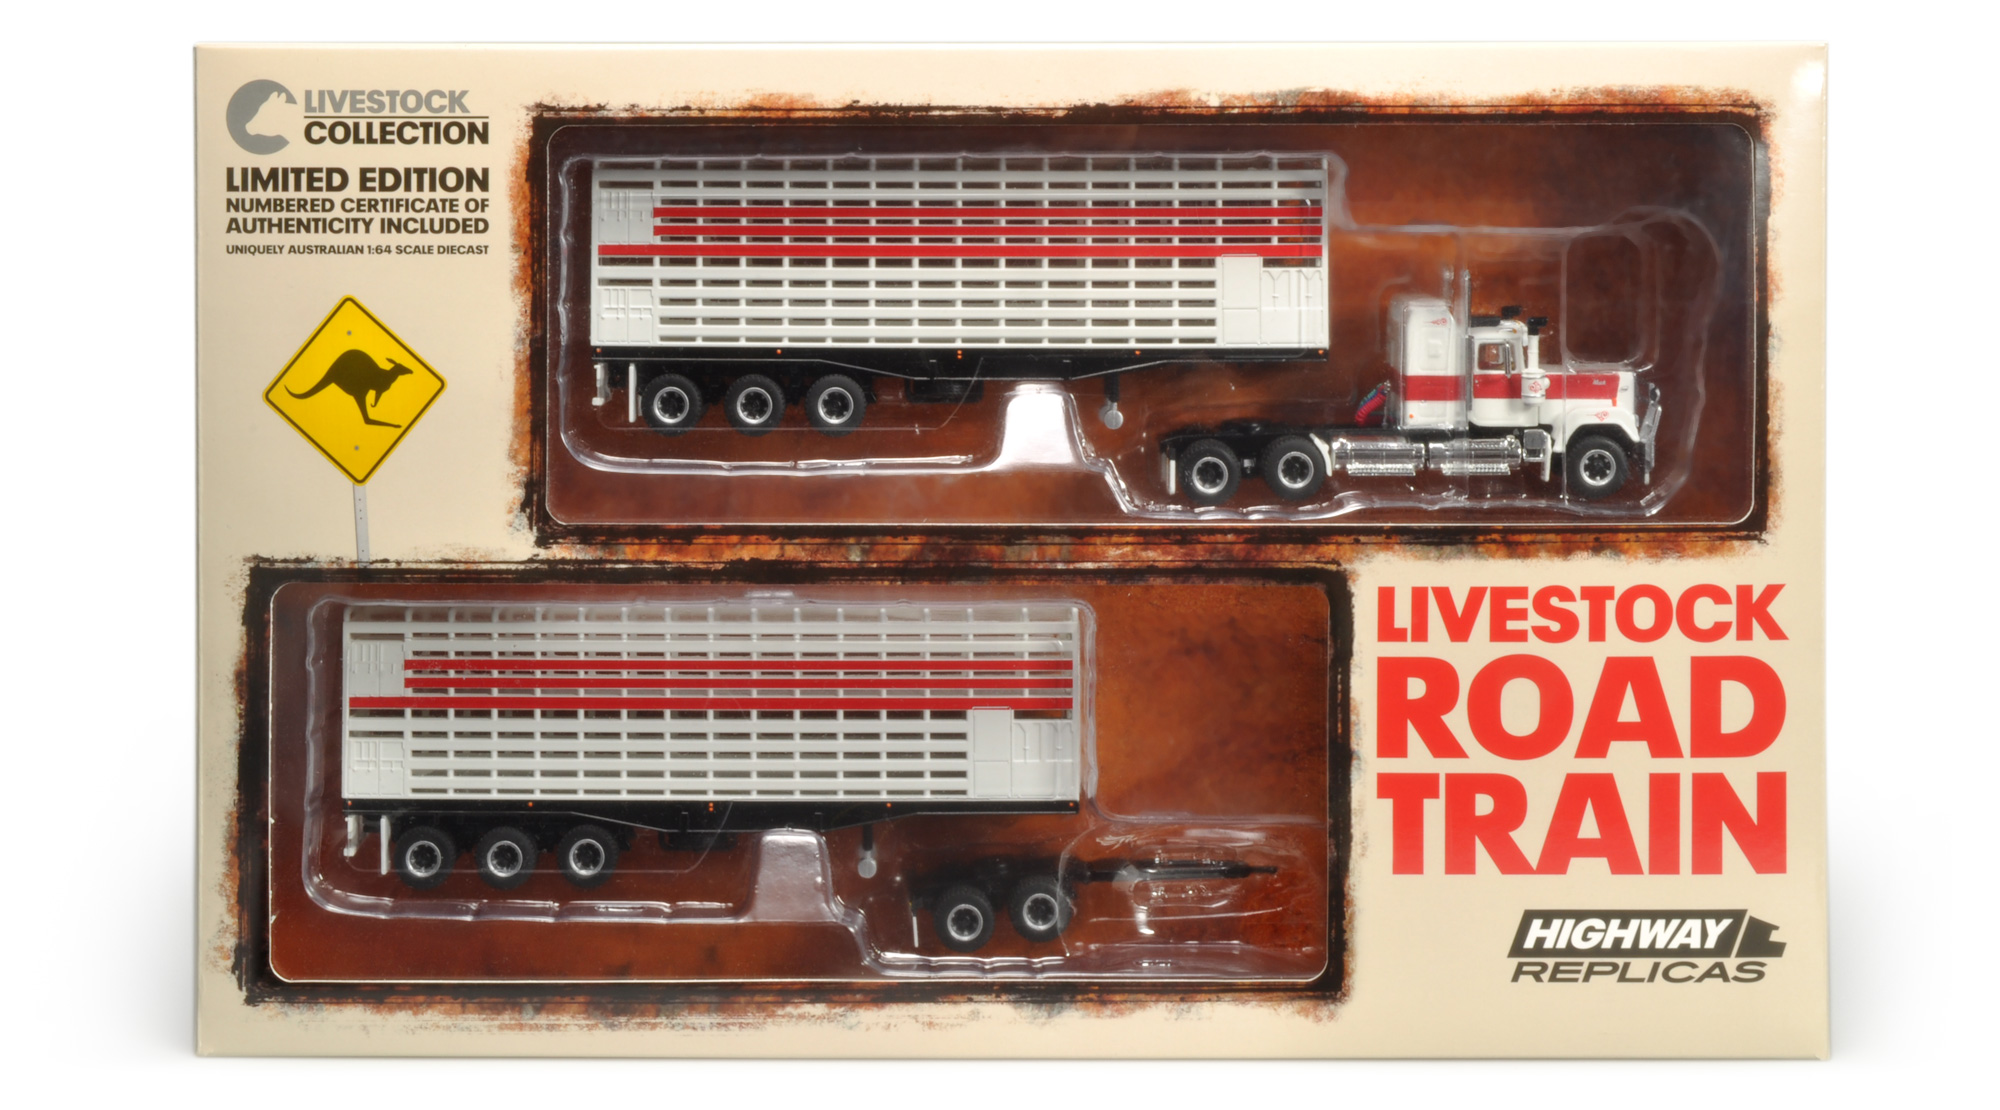 12002 Livestock Road Train Highway Replicas